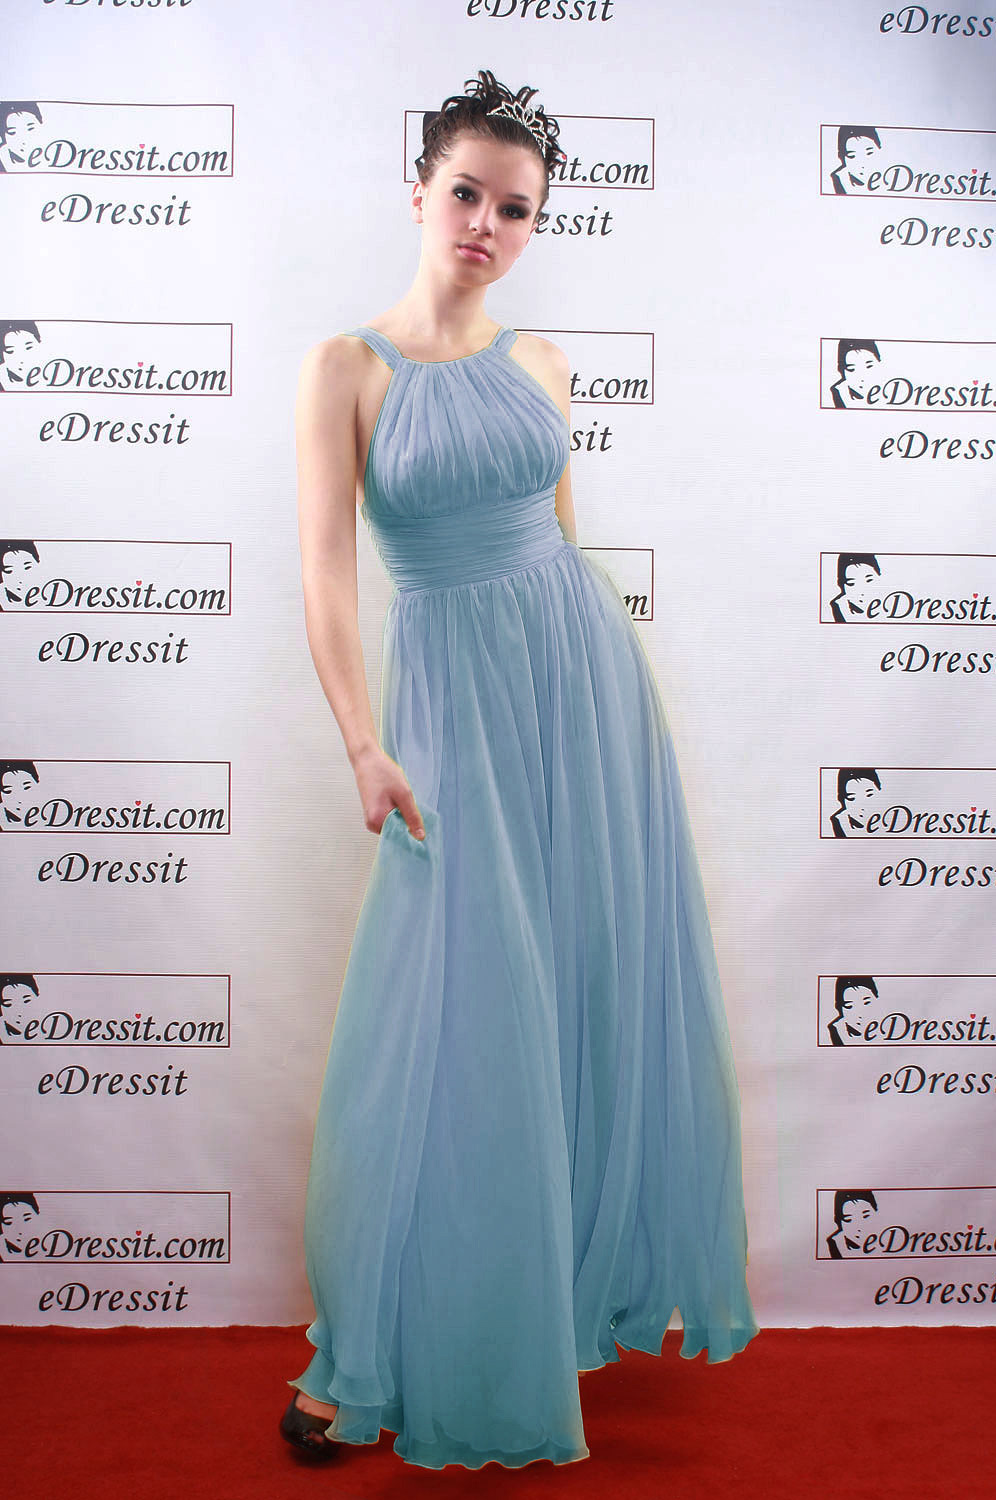 On sale !! eDressit blue Prom Gown Evening Dress (00081403C)